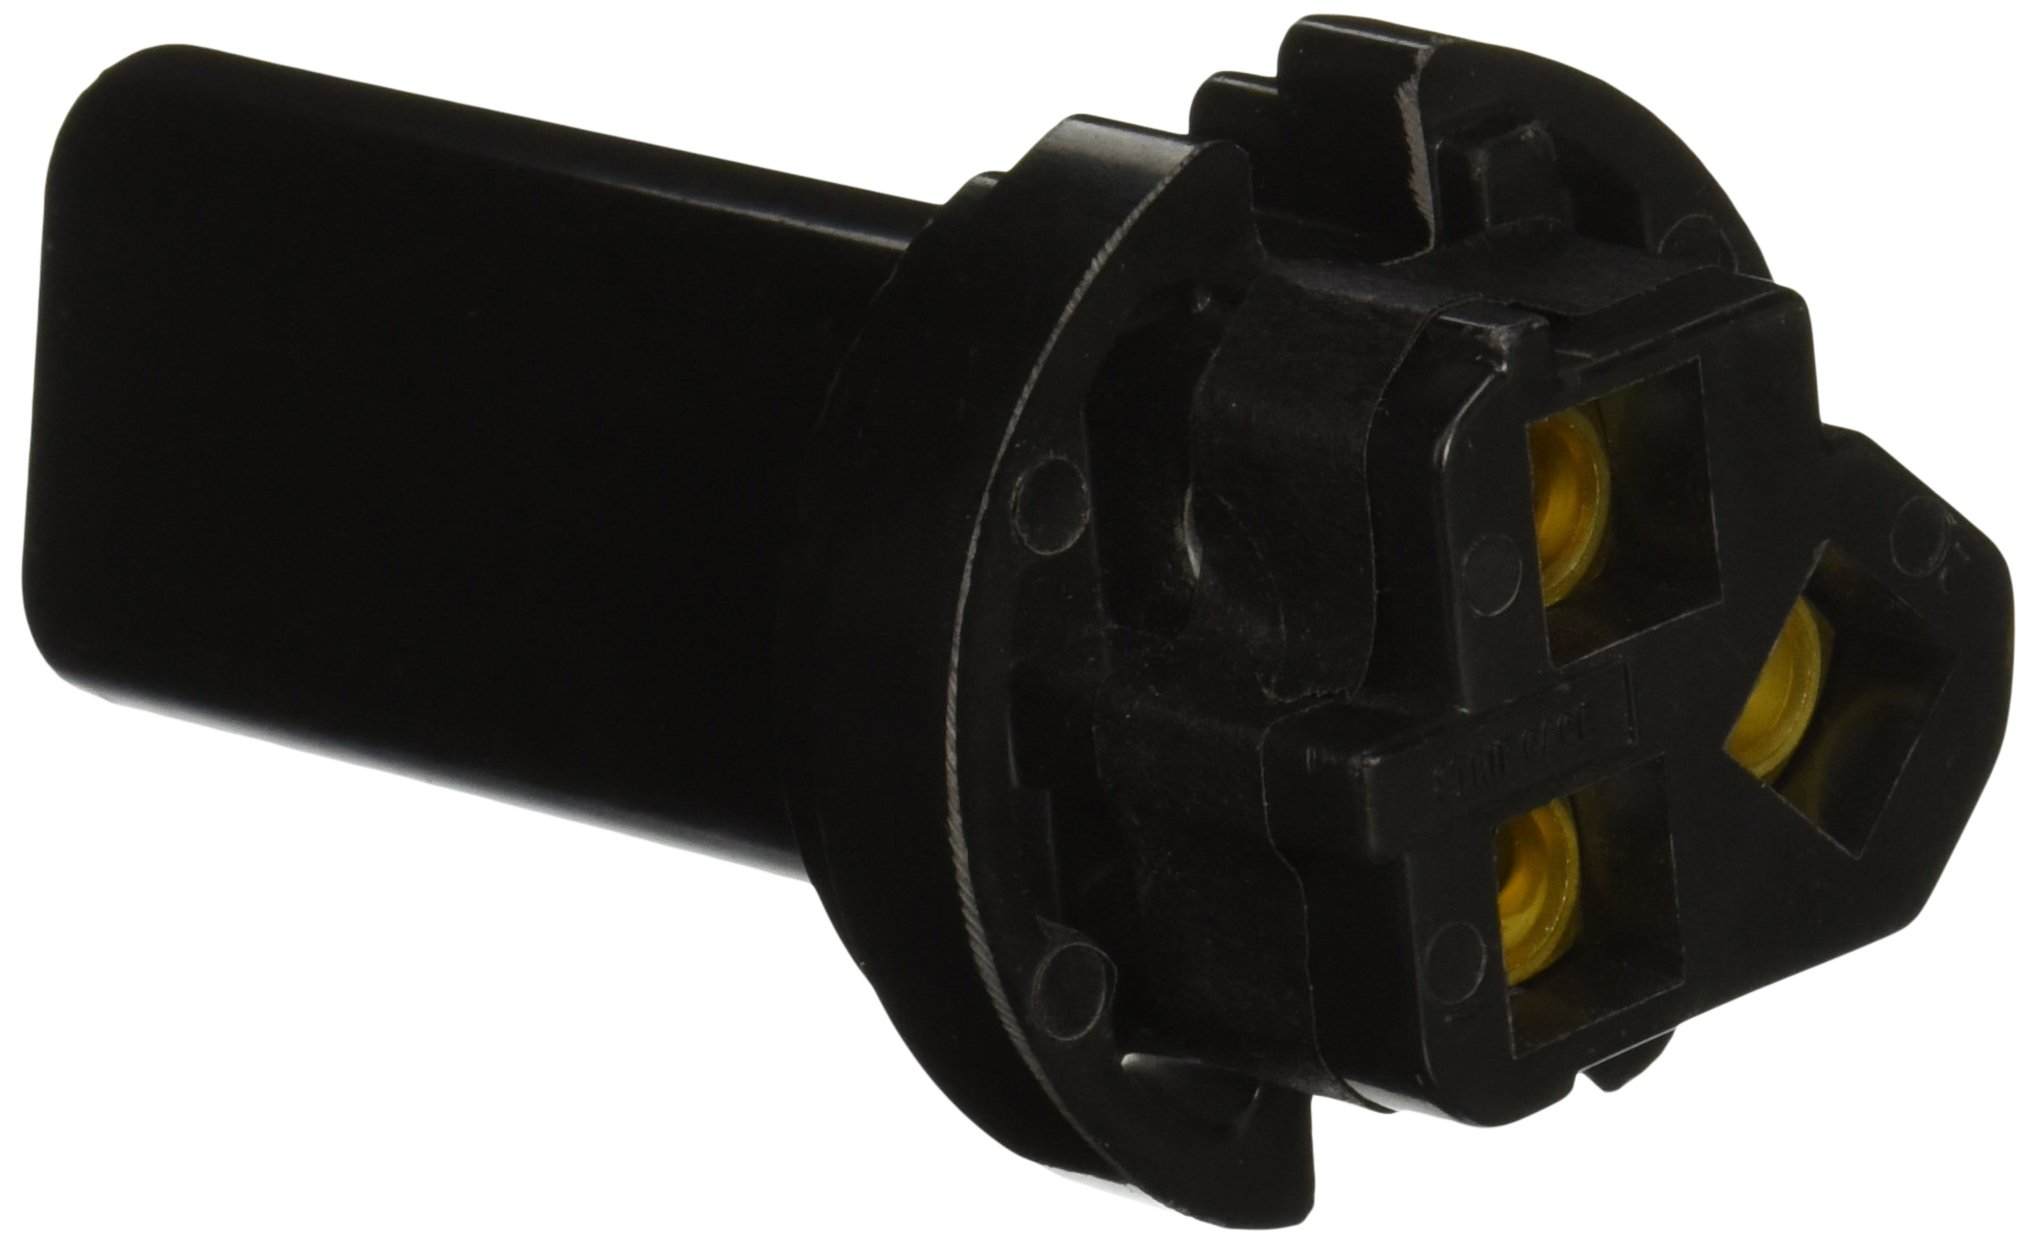 Appleton ARI-6033 Replacement Receptacle, 60 Amp, 3 Pole, 3 Wire by Appleton